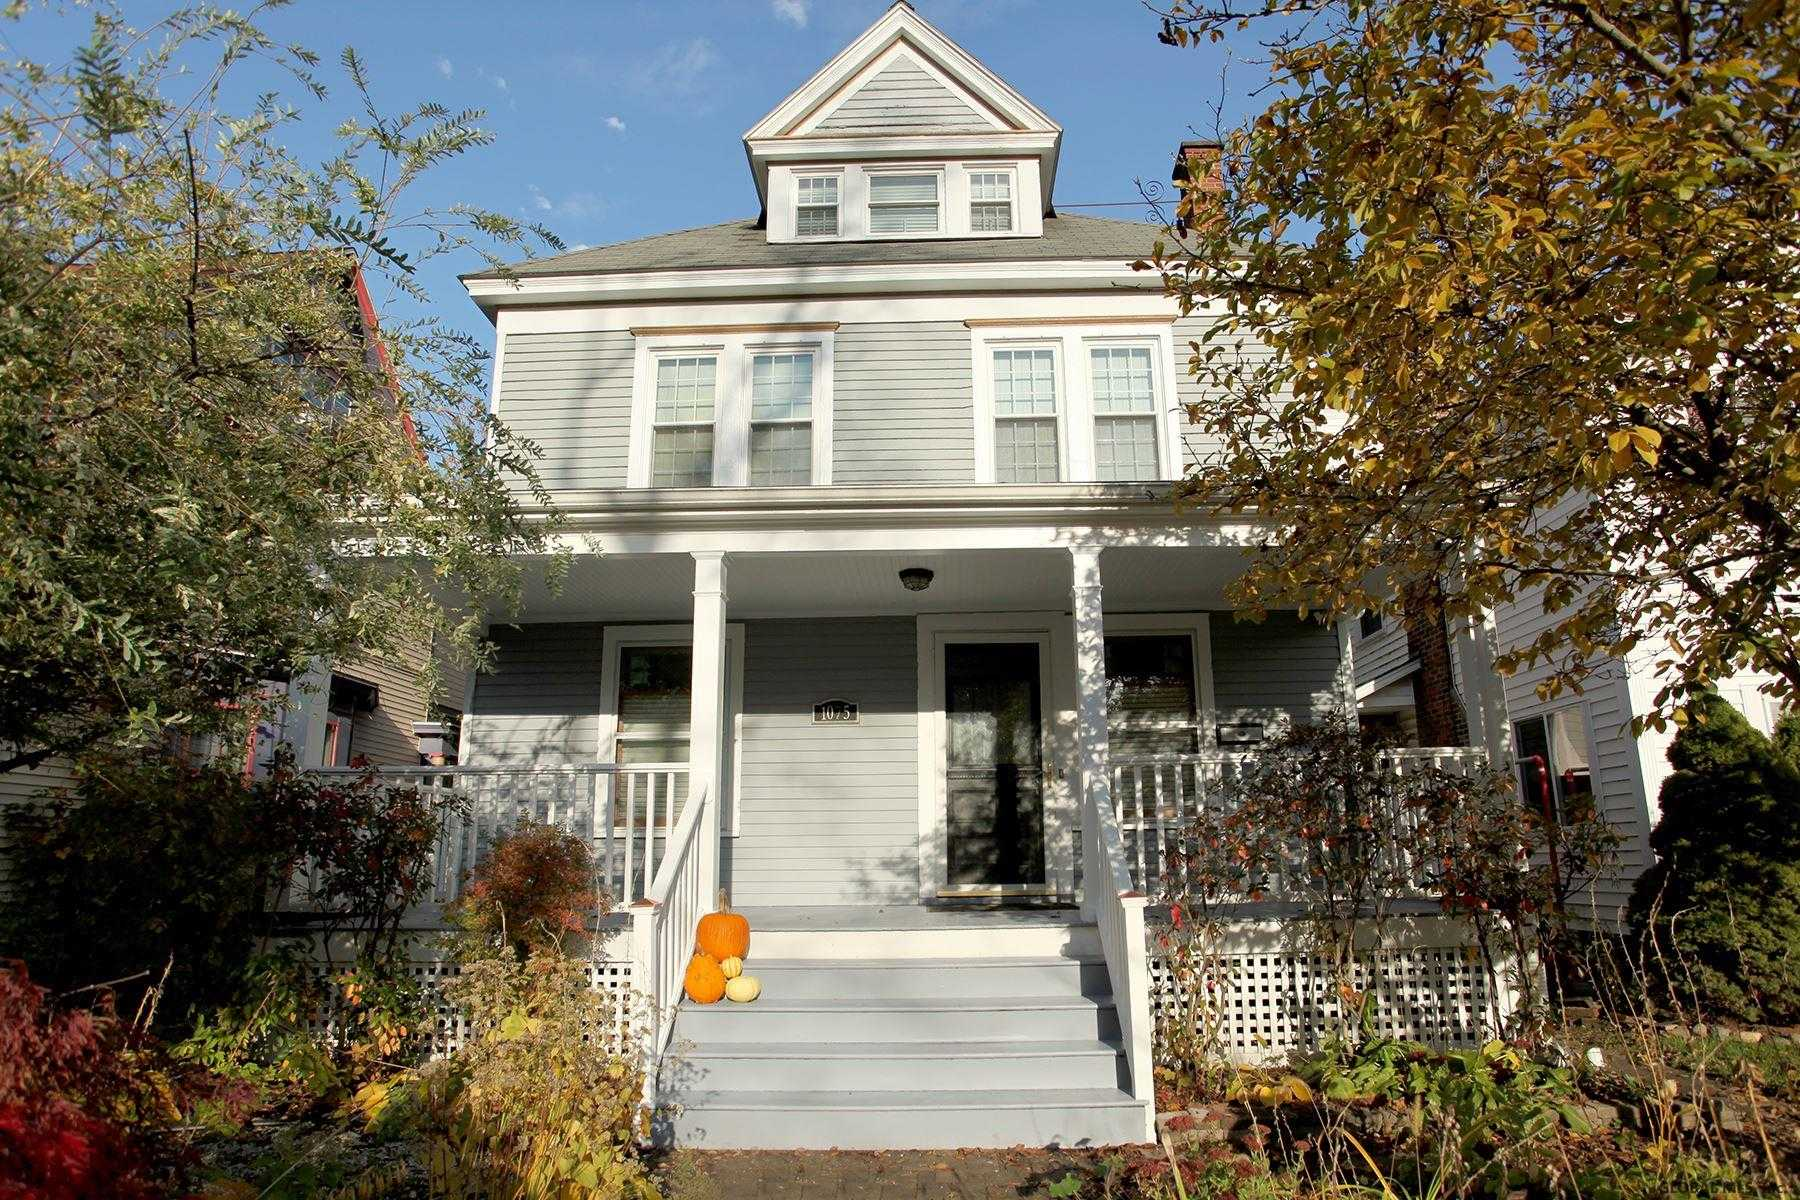 $225,000 - 5Br/2Ba -  for Sale in Schenectady